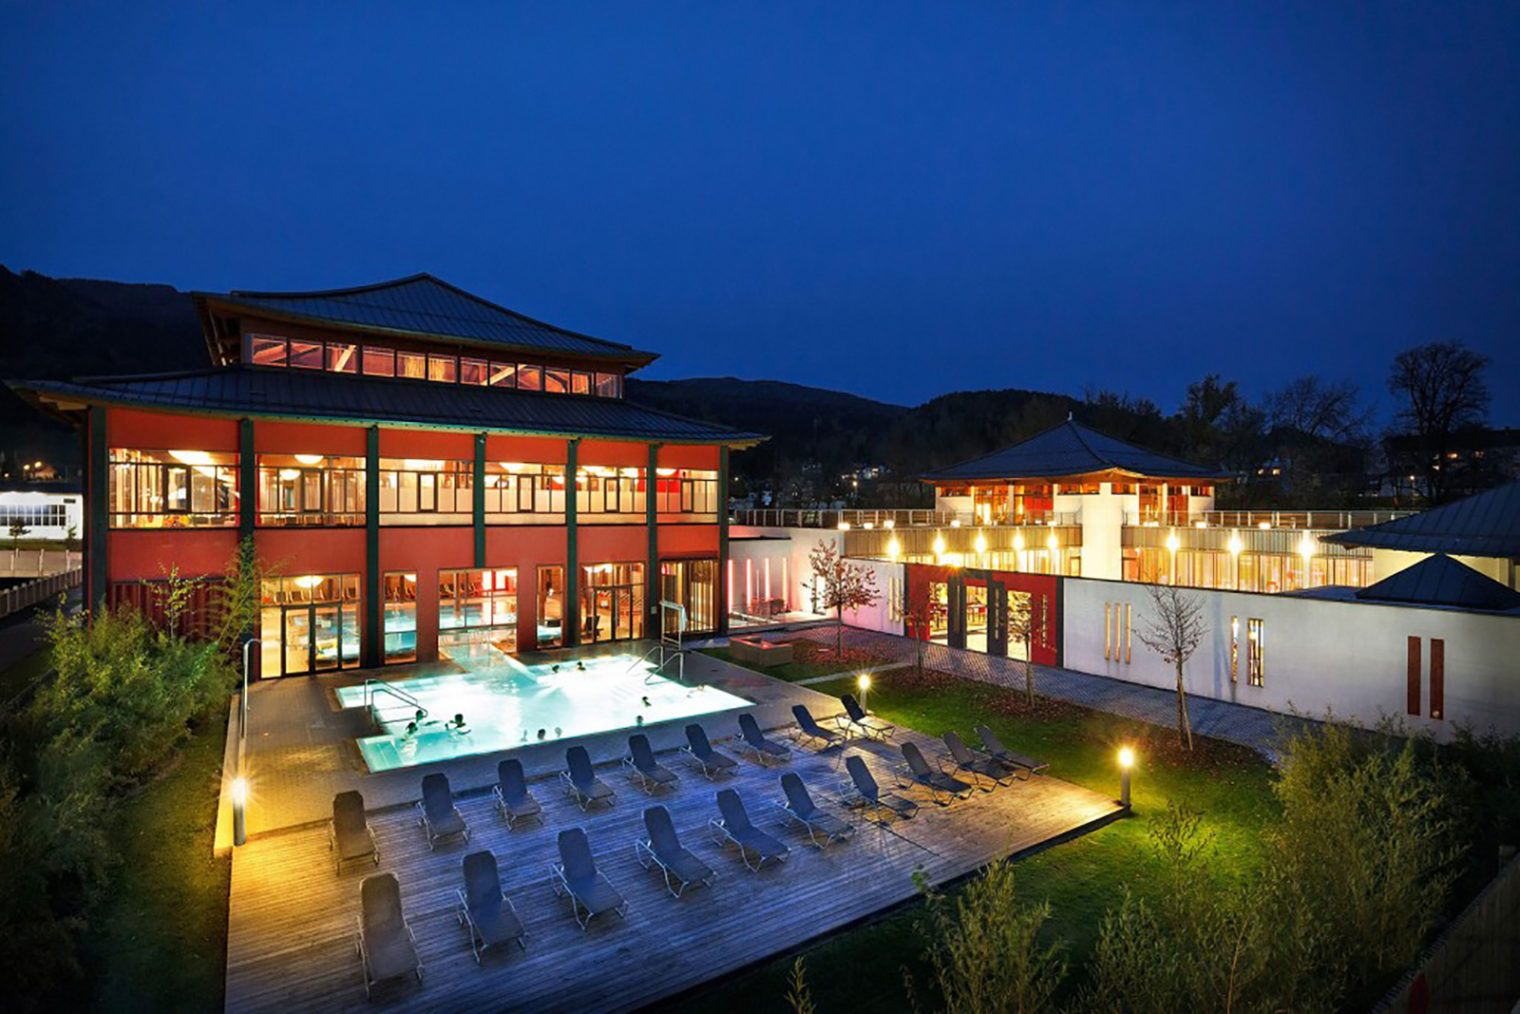 Pools at Asia Spa Leoben